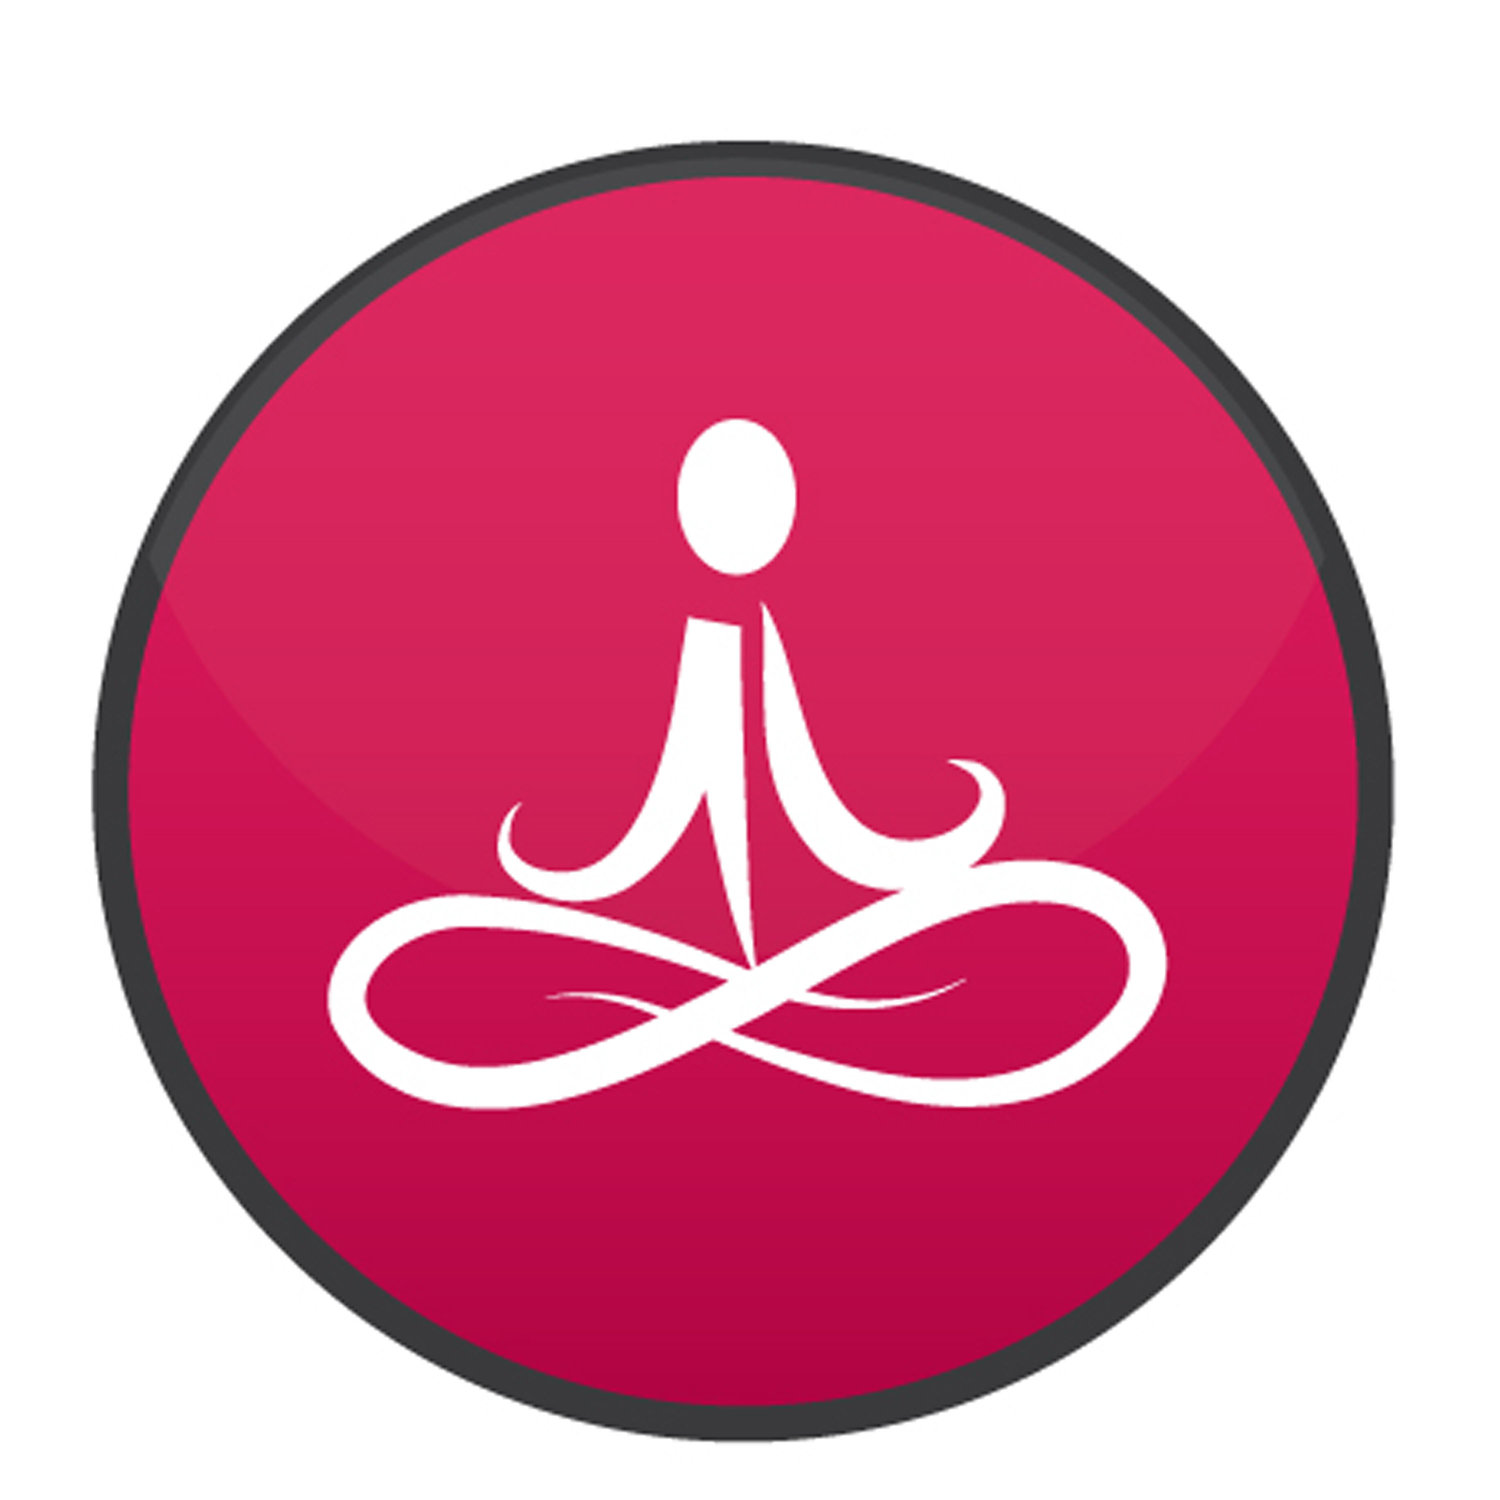 YogiMums - Online yoga helping busy mums get flexible, fit and chilled out.